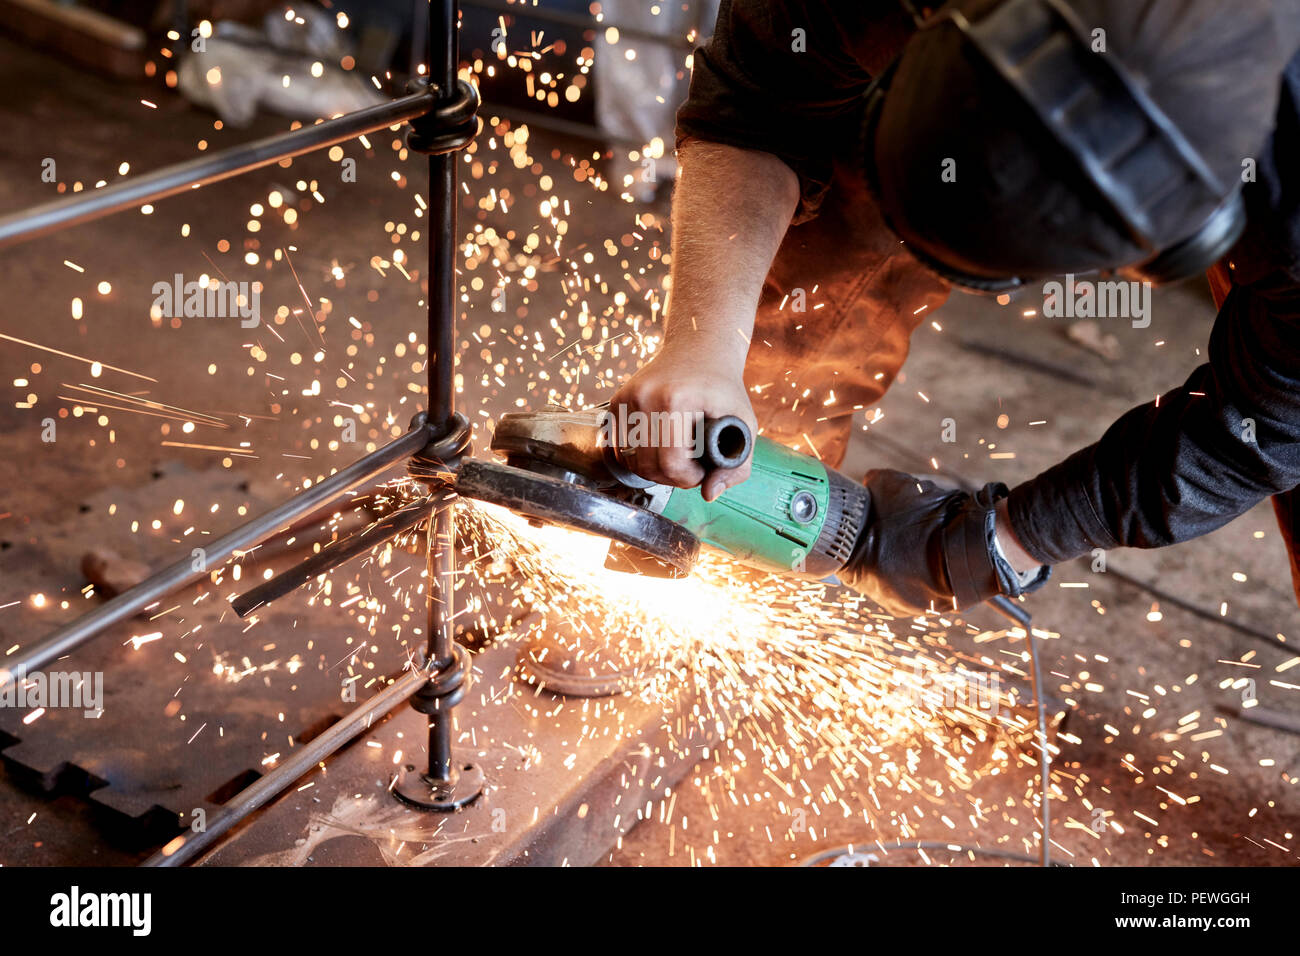 An artisan metalworker at work holding an angle grinder, workng on a metal fence. - Stock Image